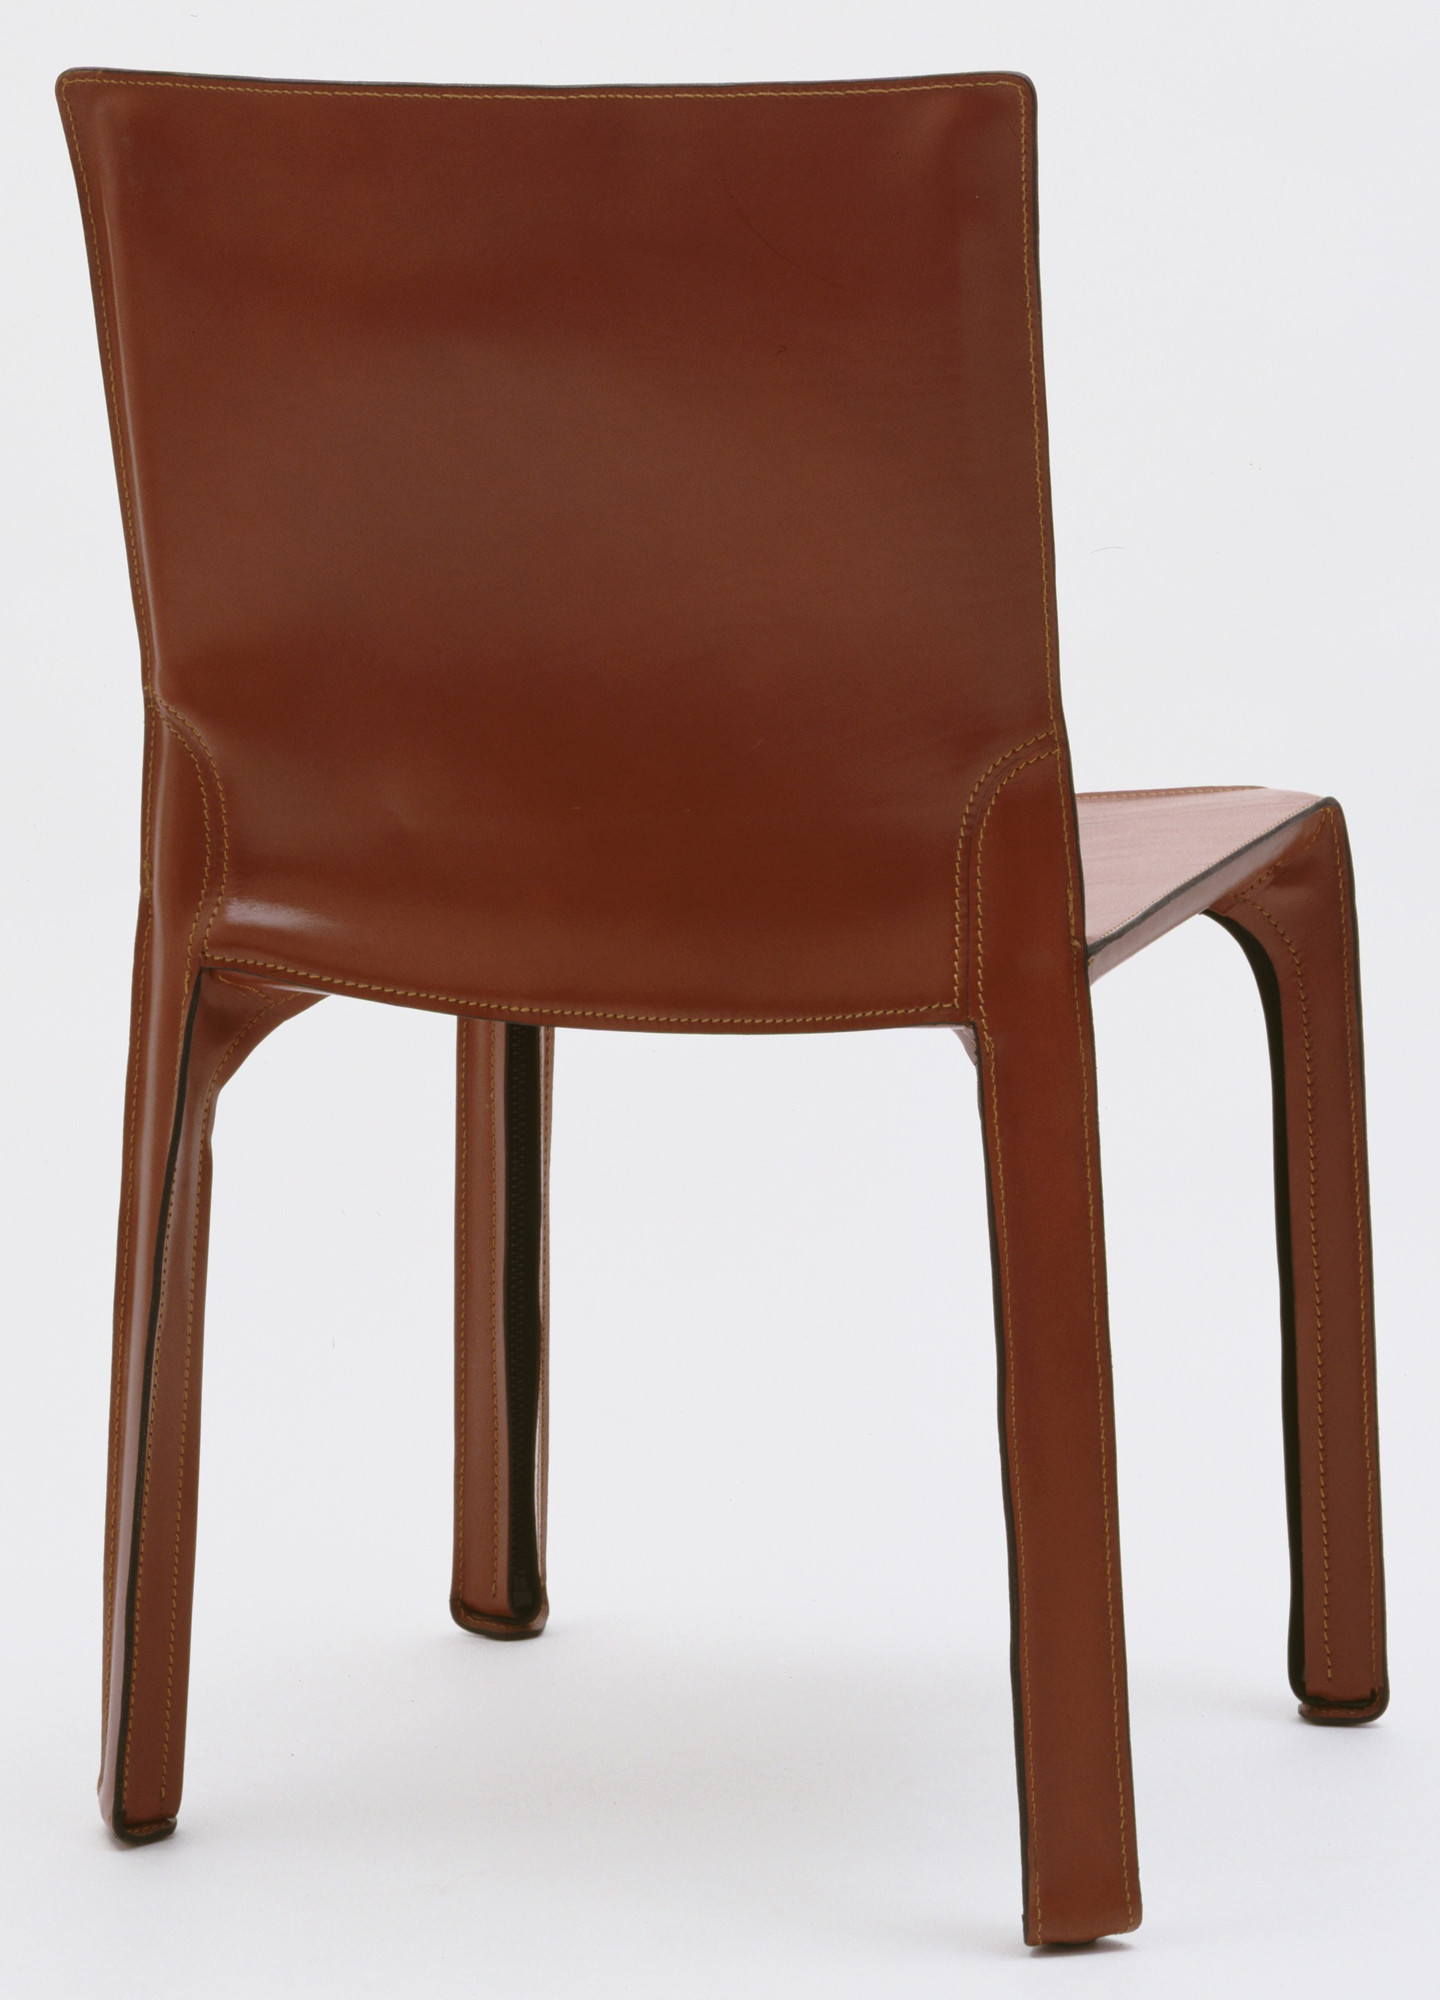 Mario Bellini. Cab Side Chair. 1976